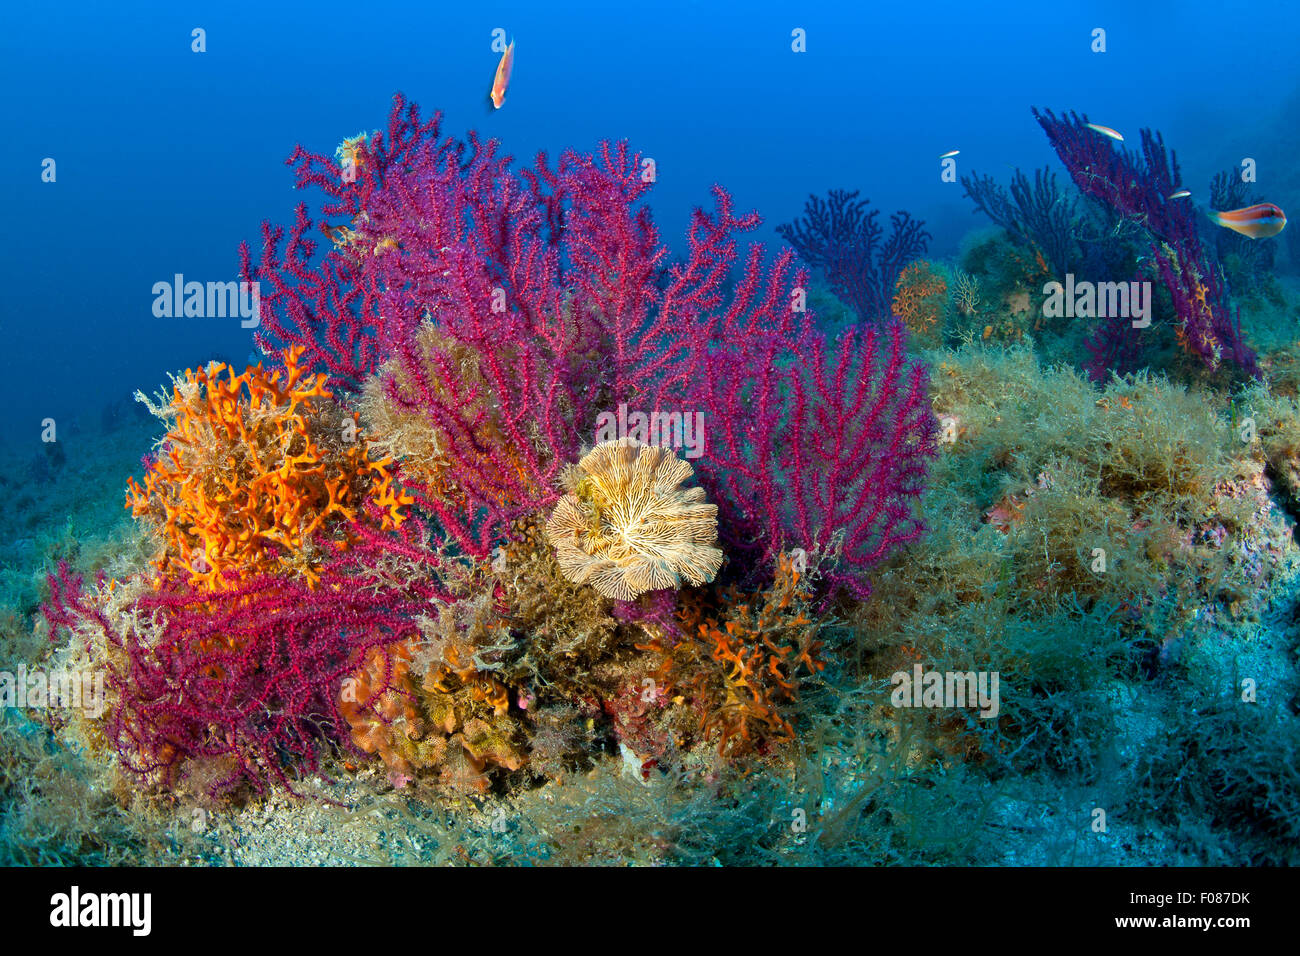 Variable Gorgonians in Coral Reef, Paramuricea clavata, Massa Lubrense, Campania, Italy - Stock Image